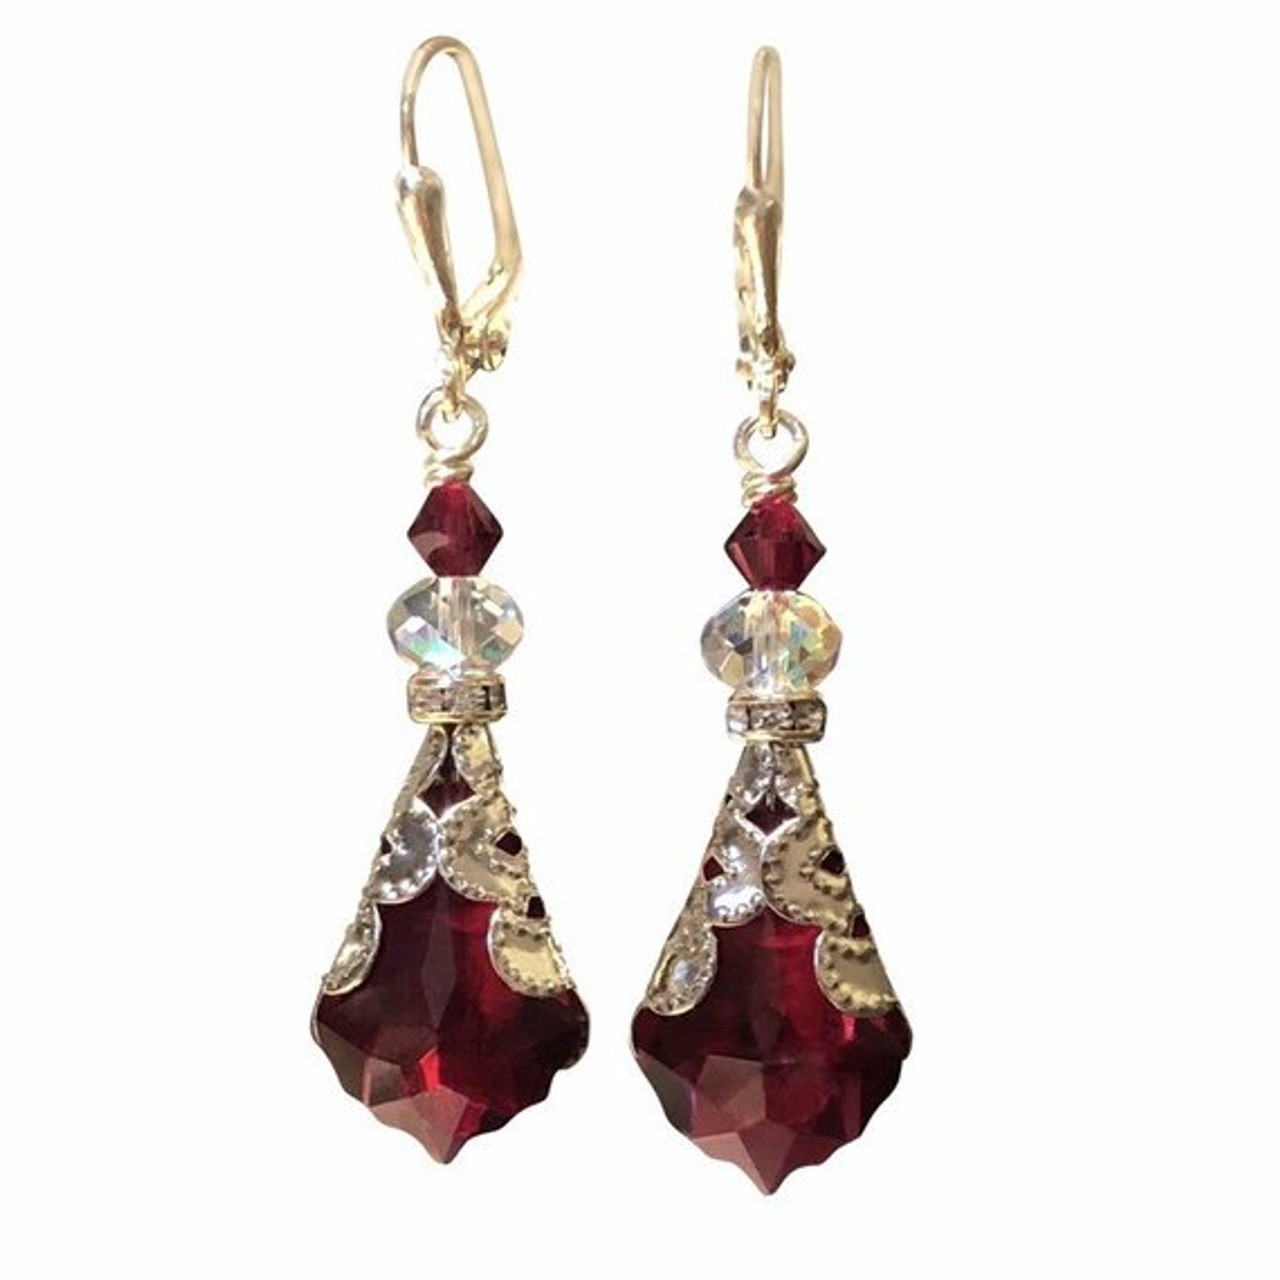 738c02aab323e7 Romantic Red Vintage Inspired Baroque Crystal Earrings with Crystal by  Swarovski